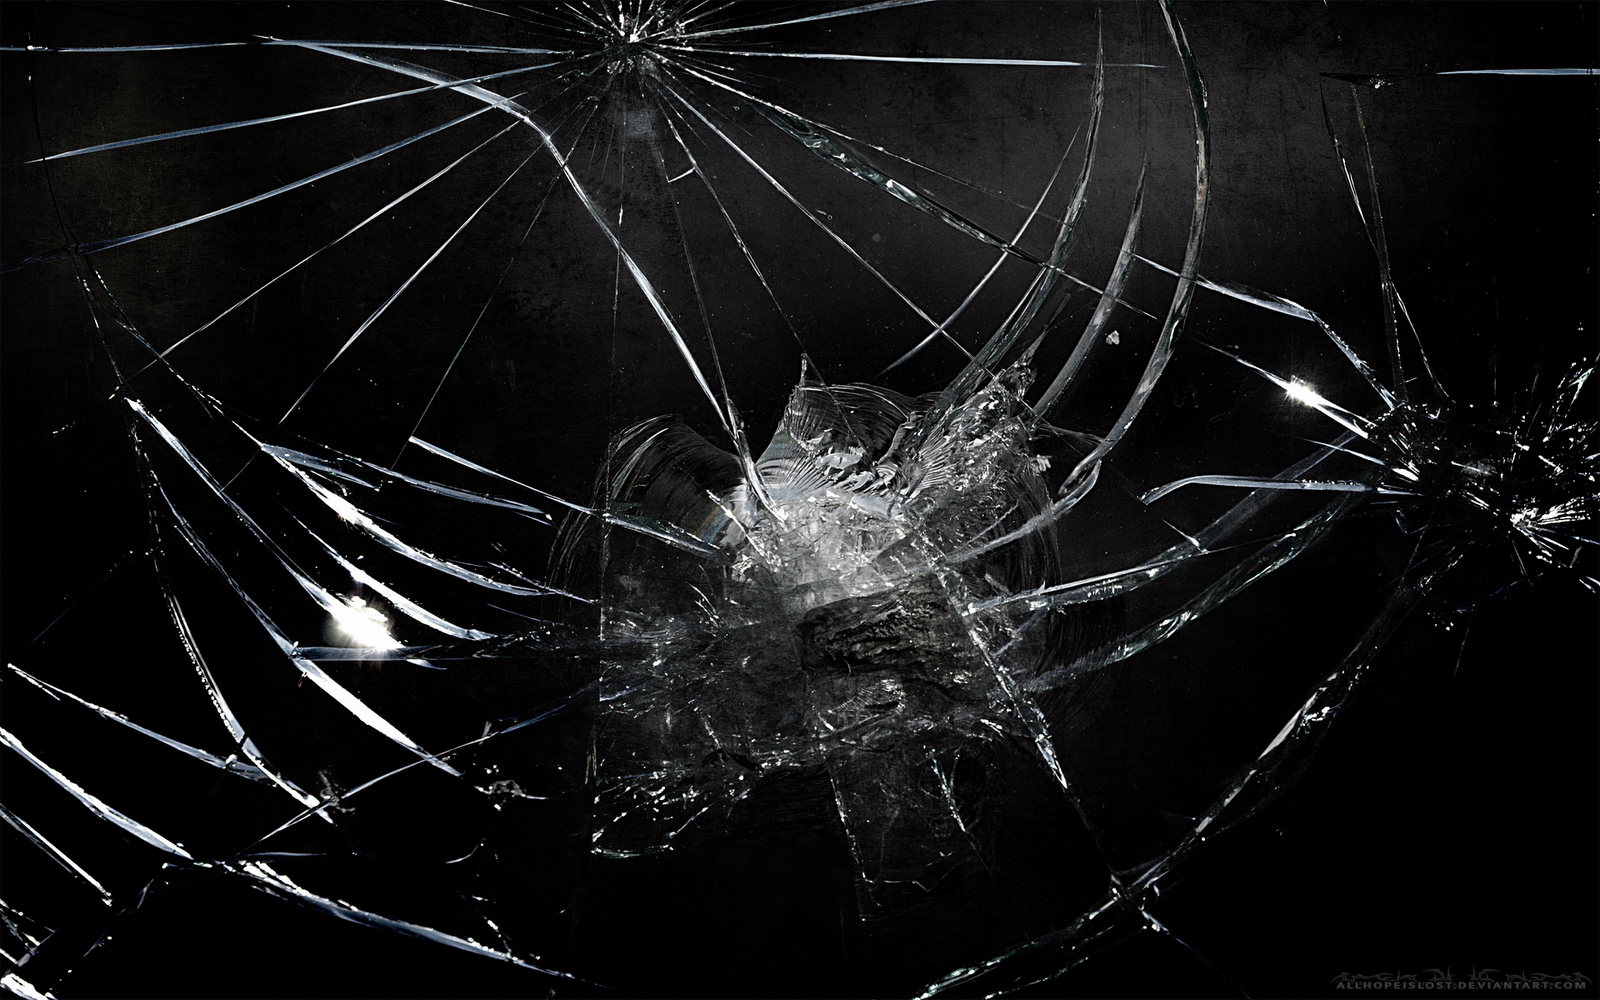 Windows 7 Cracked Screen Wallpaper Dom 997276 Png Images Pngio